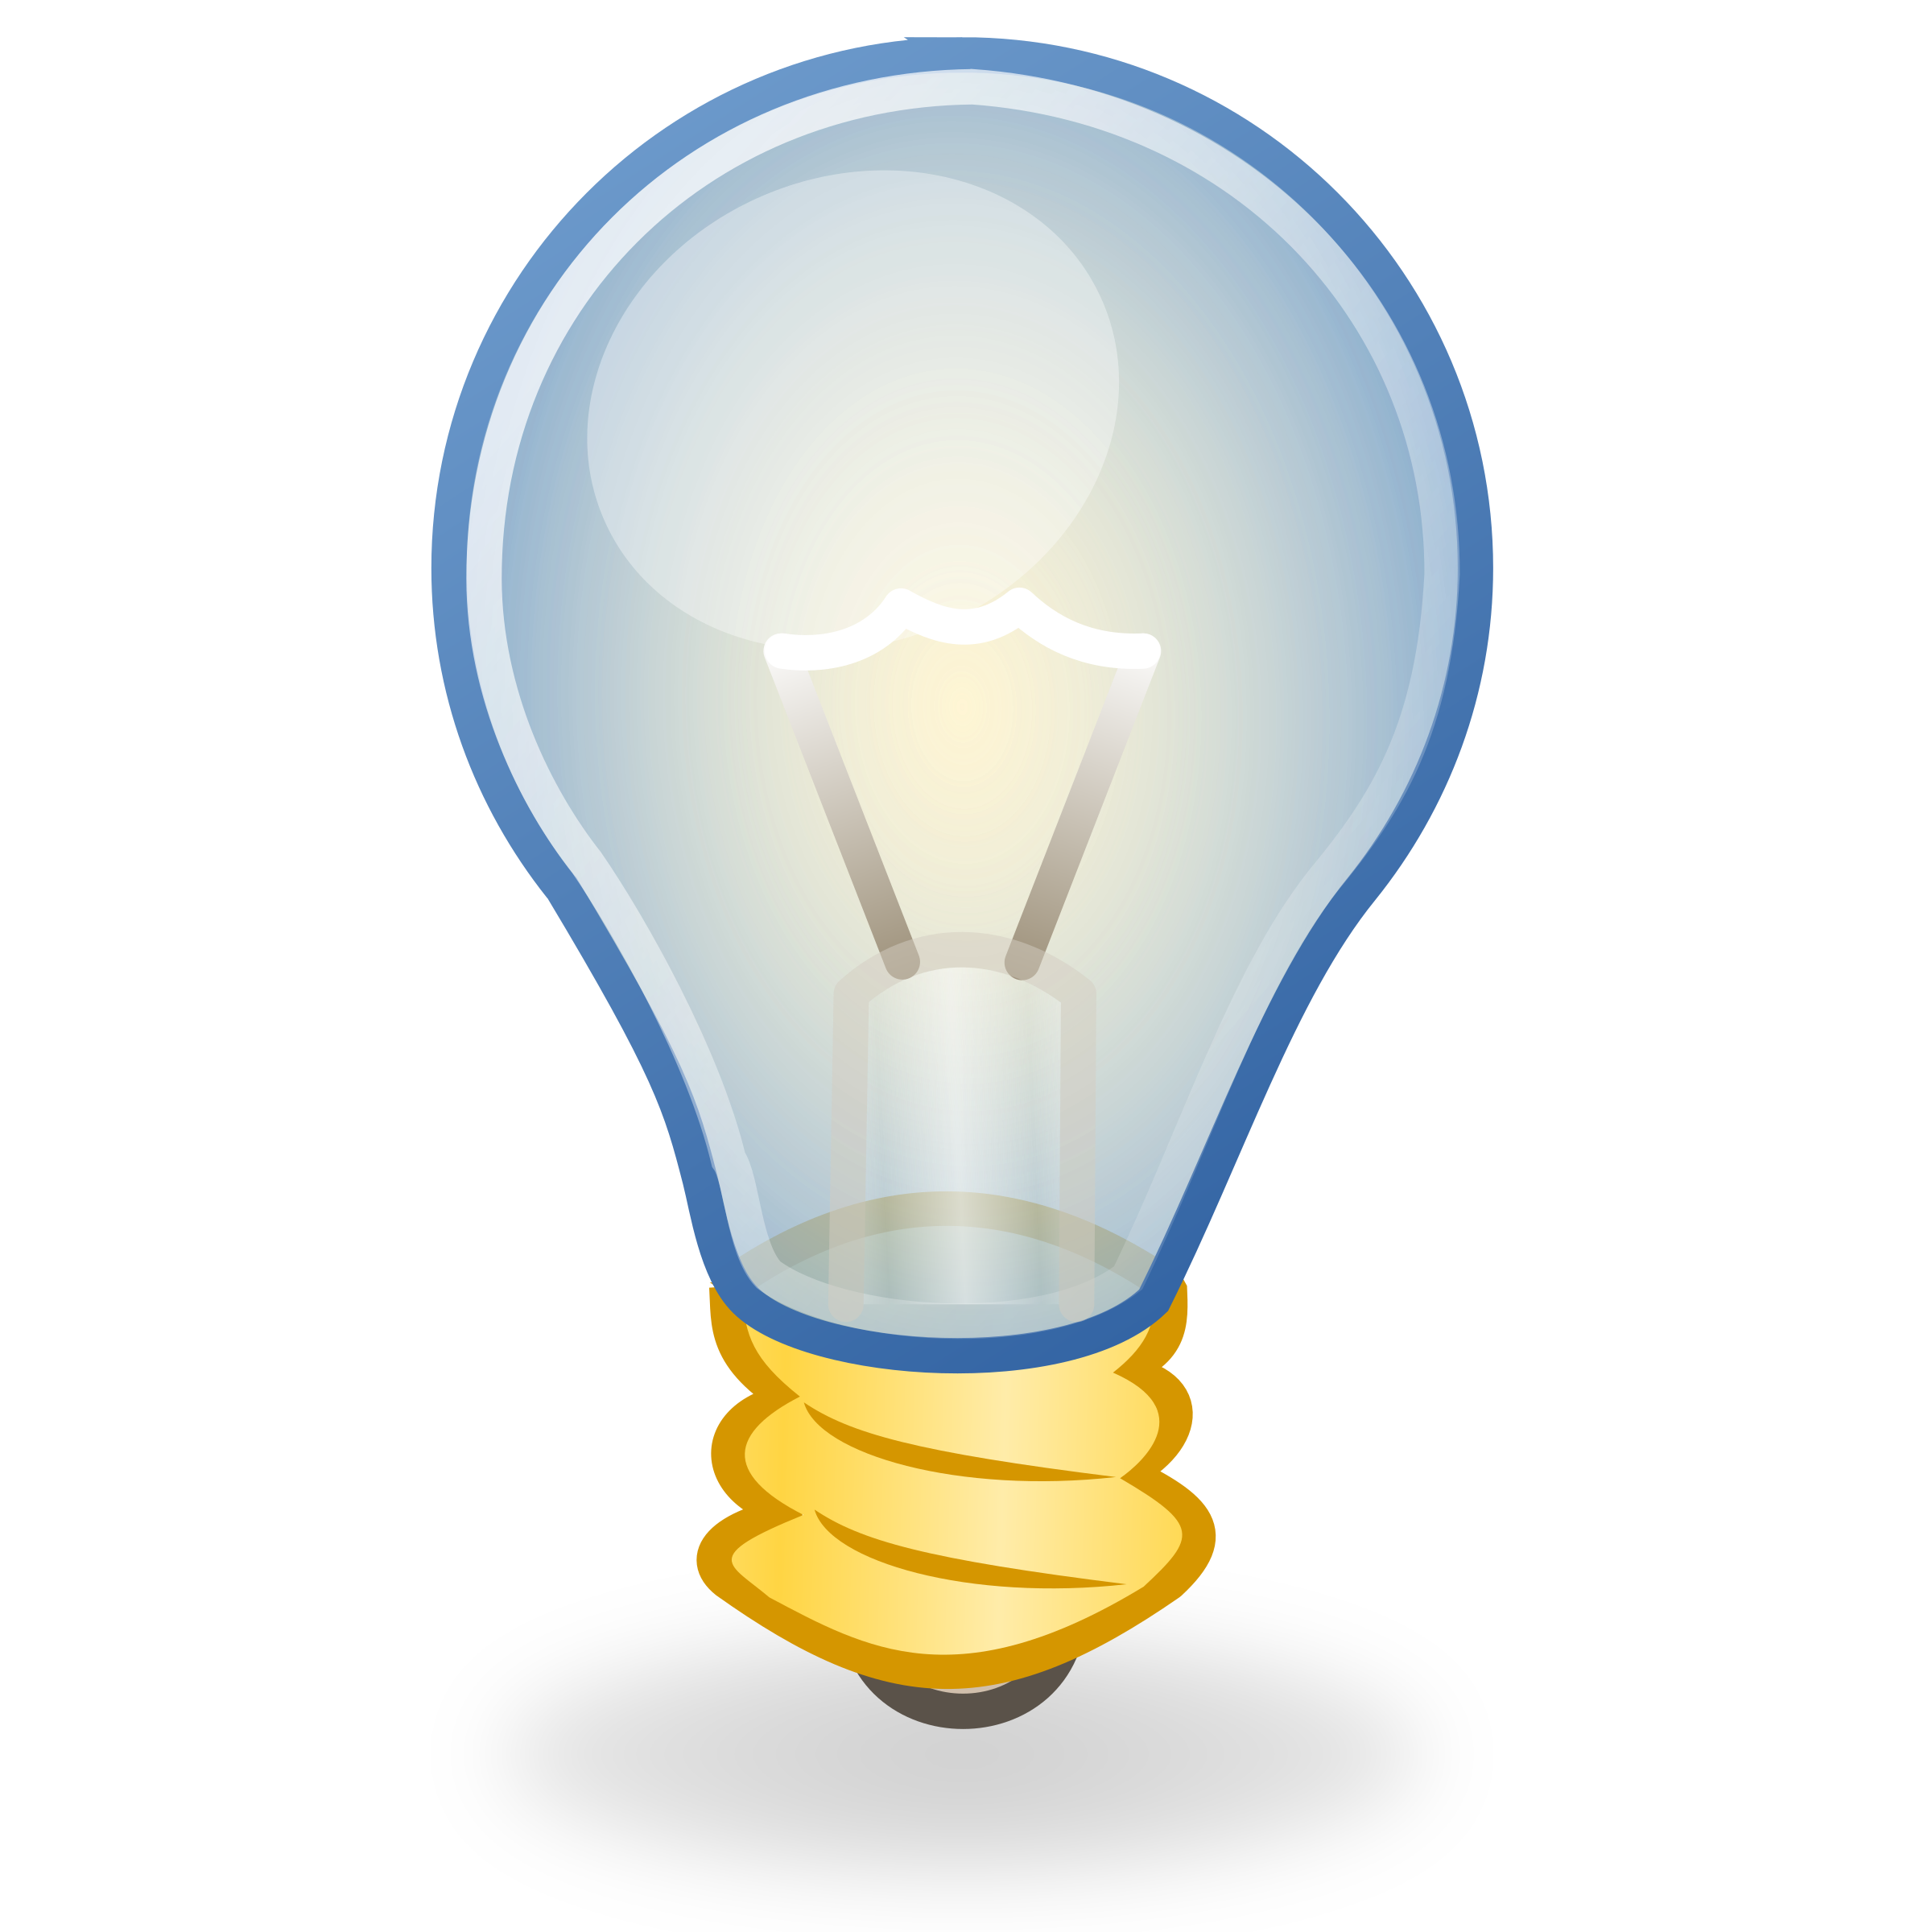 Light bulb icon by lual